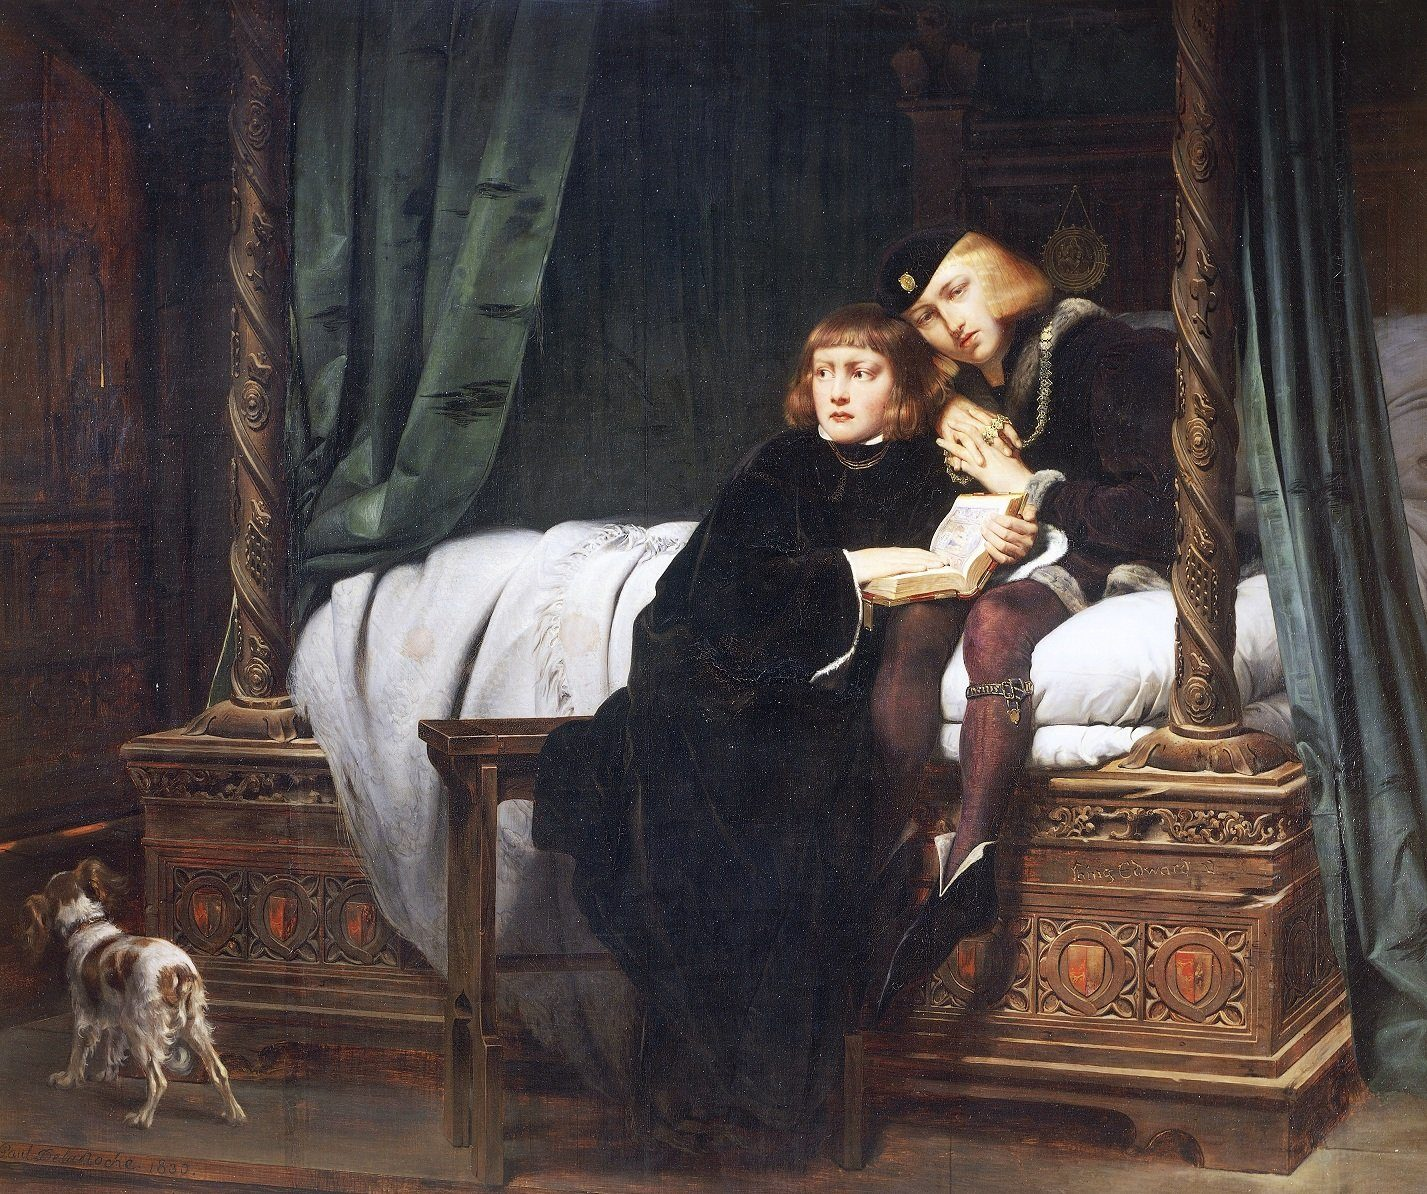 The Princes in the Tower, Edward V (1470-circa 1483) and his brother Richard (1473-ca 1483), sons of Edward IV of England and Elizabeth Woodville. Painting by Paul Delaroche (1797-1856), 1831, oil on canvas, 181x215 cm. Paris, Musée Du Louvre